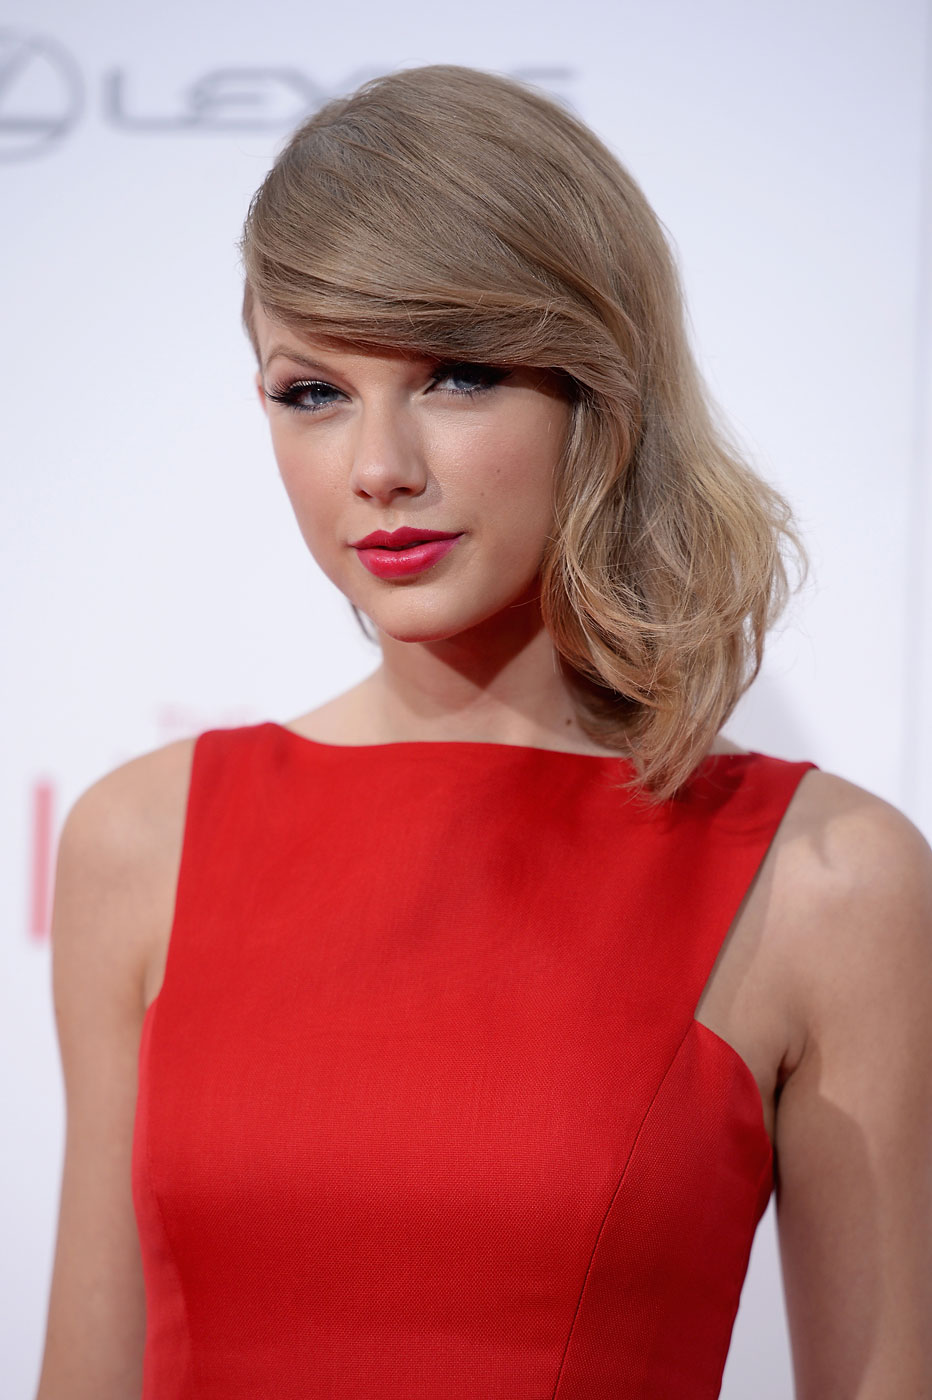 Actress Taylor Swift attends  The Giver  premiere at Ziegfeld Theater on August 11, 2014 in New York City.